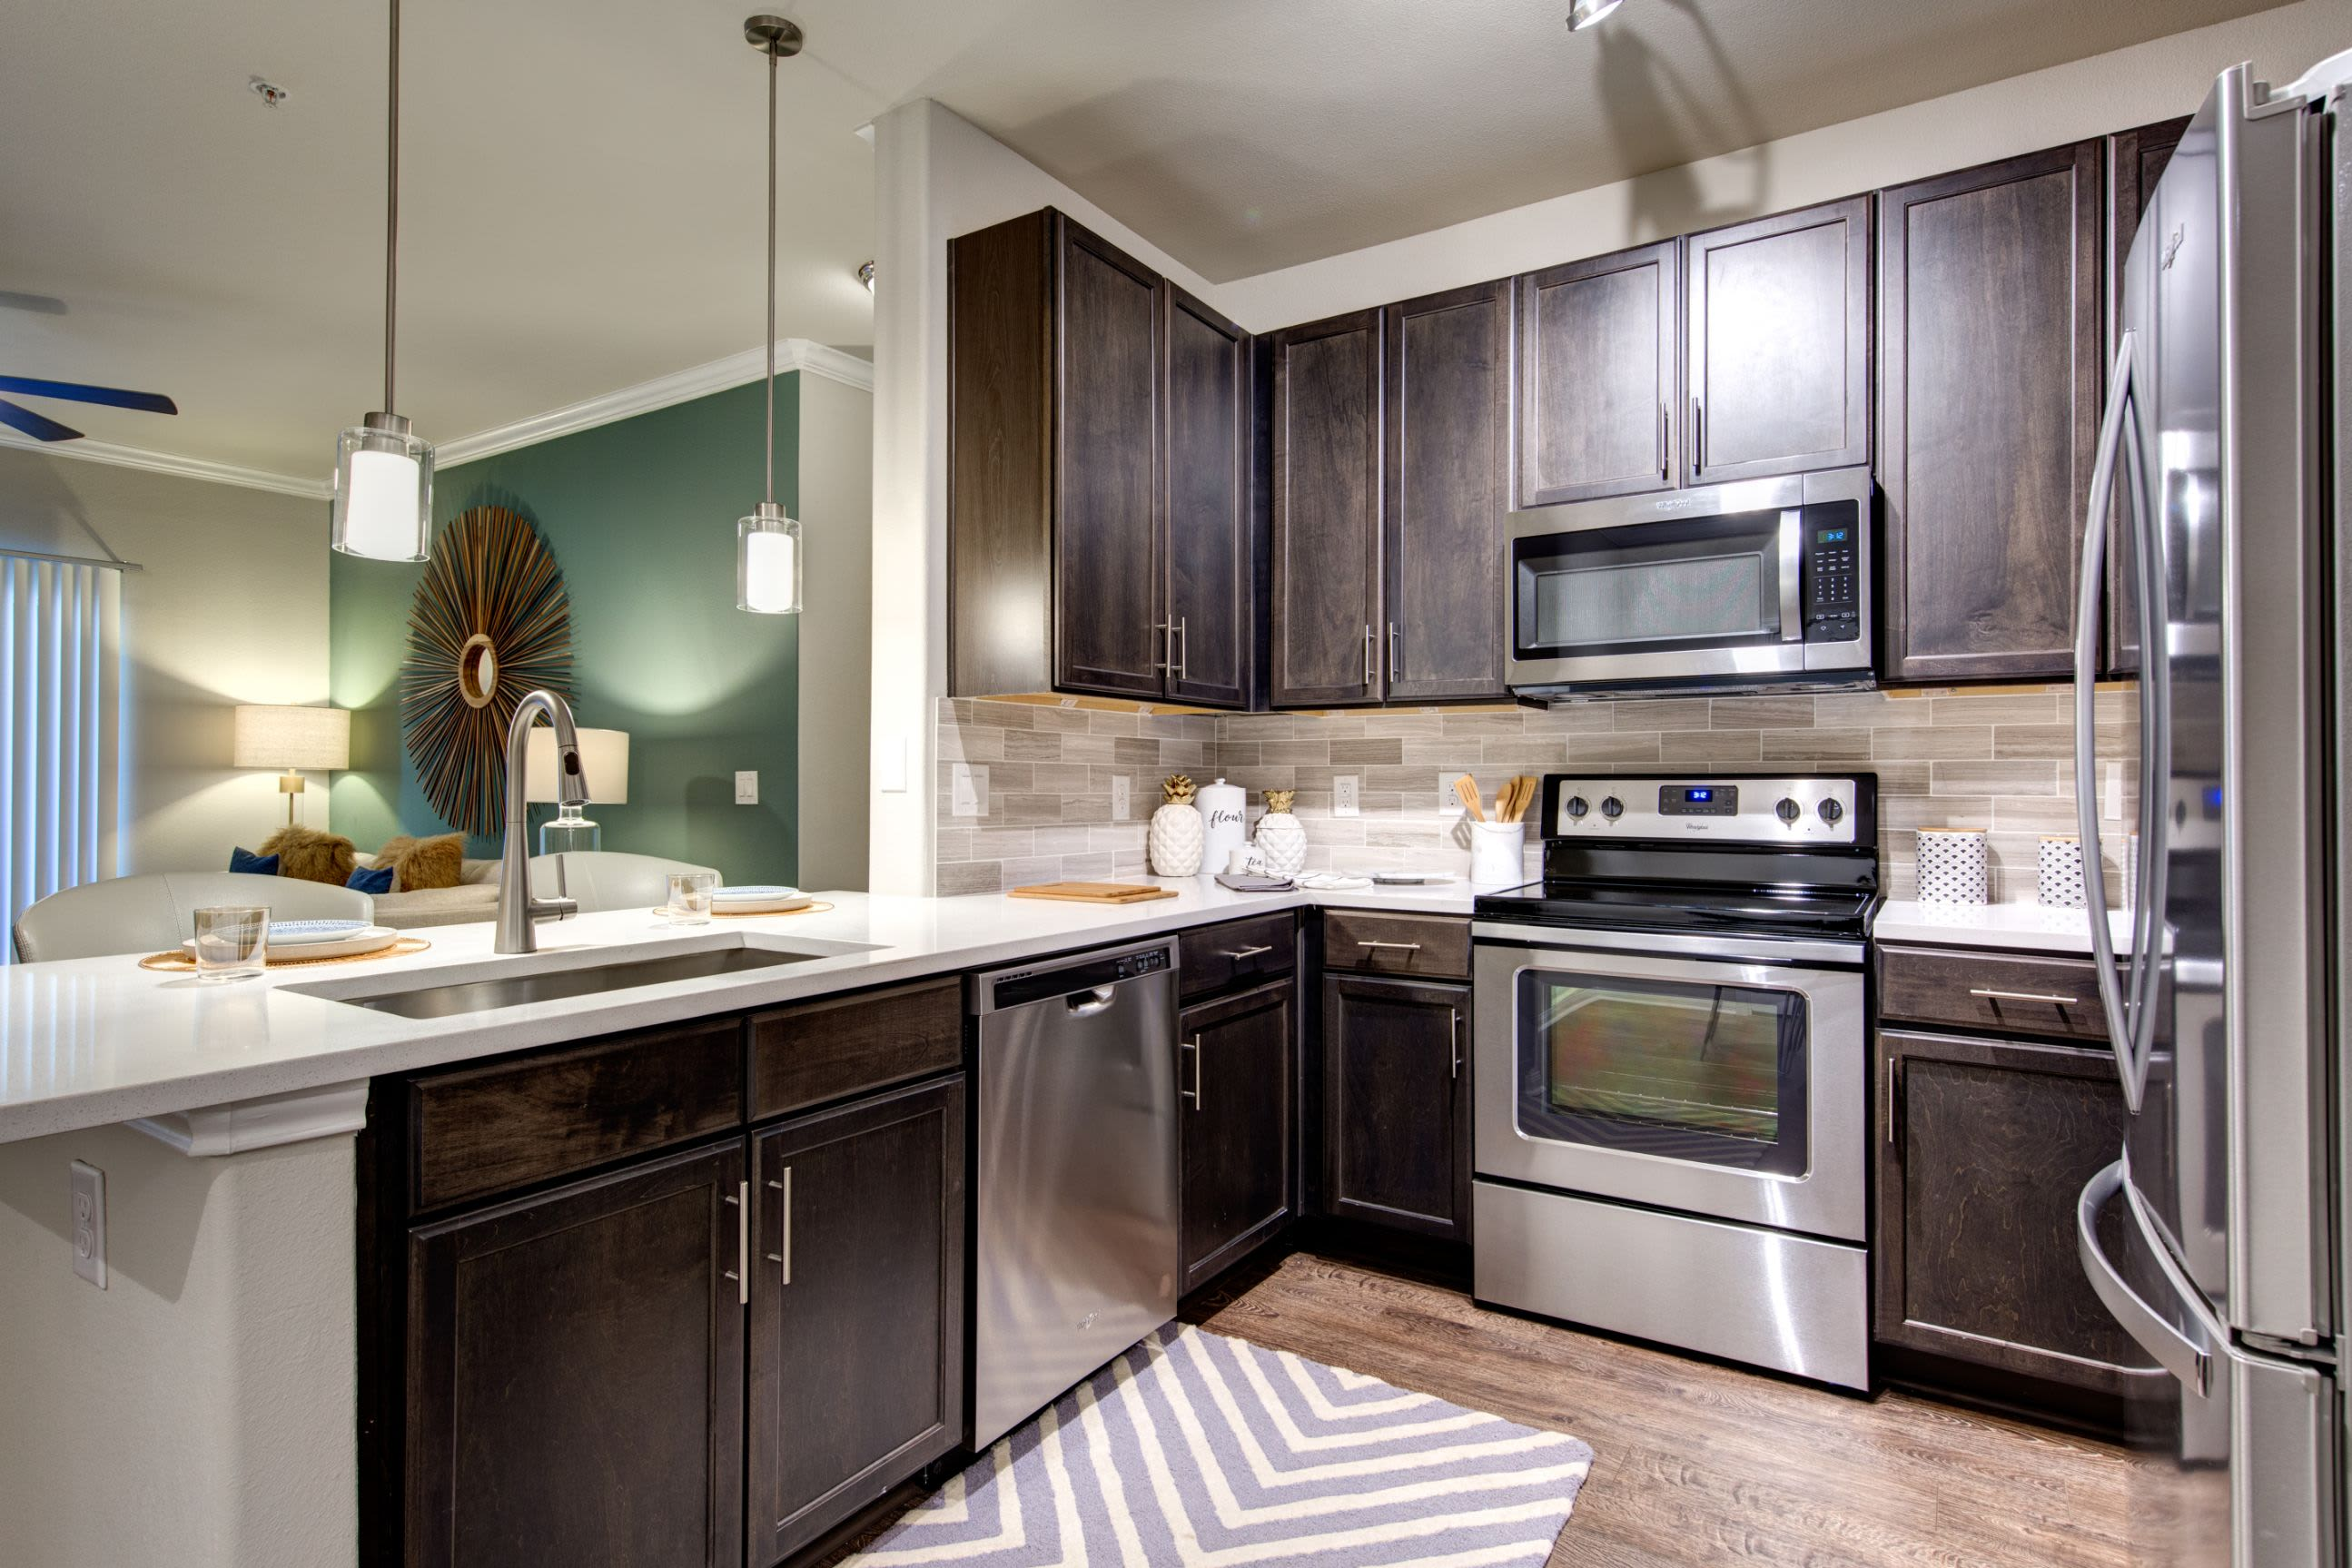 Kitchen with modern appliances at Marquis at The Woodlands in Spring, Texas